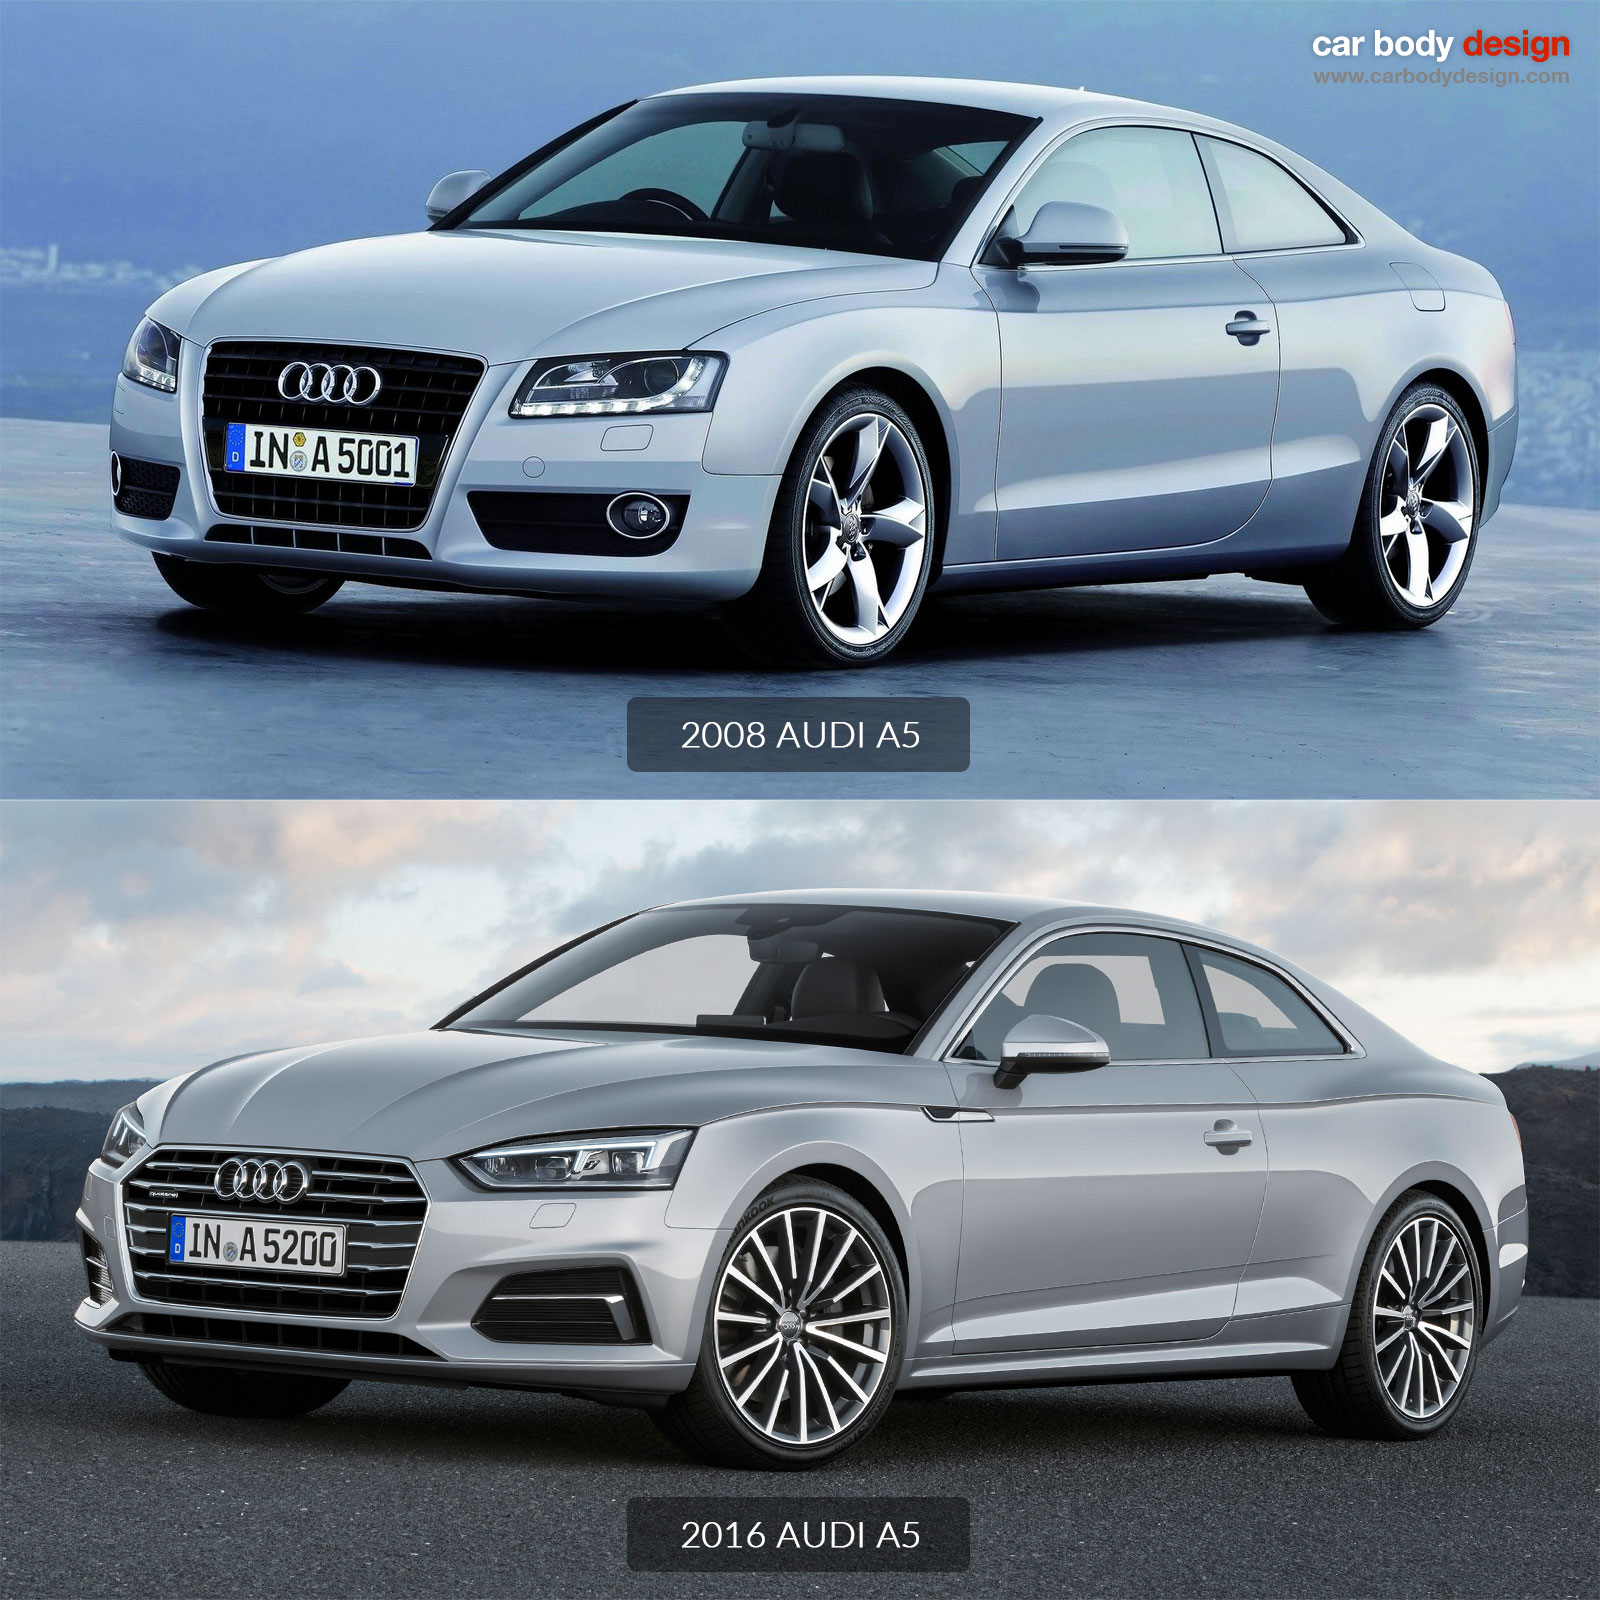 2008 Audi A5 Vs 2016 Audi A5 Design Comparison Car Body Design